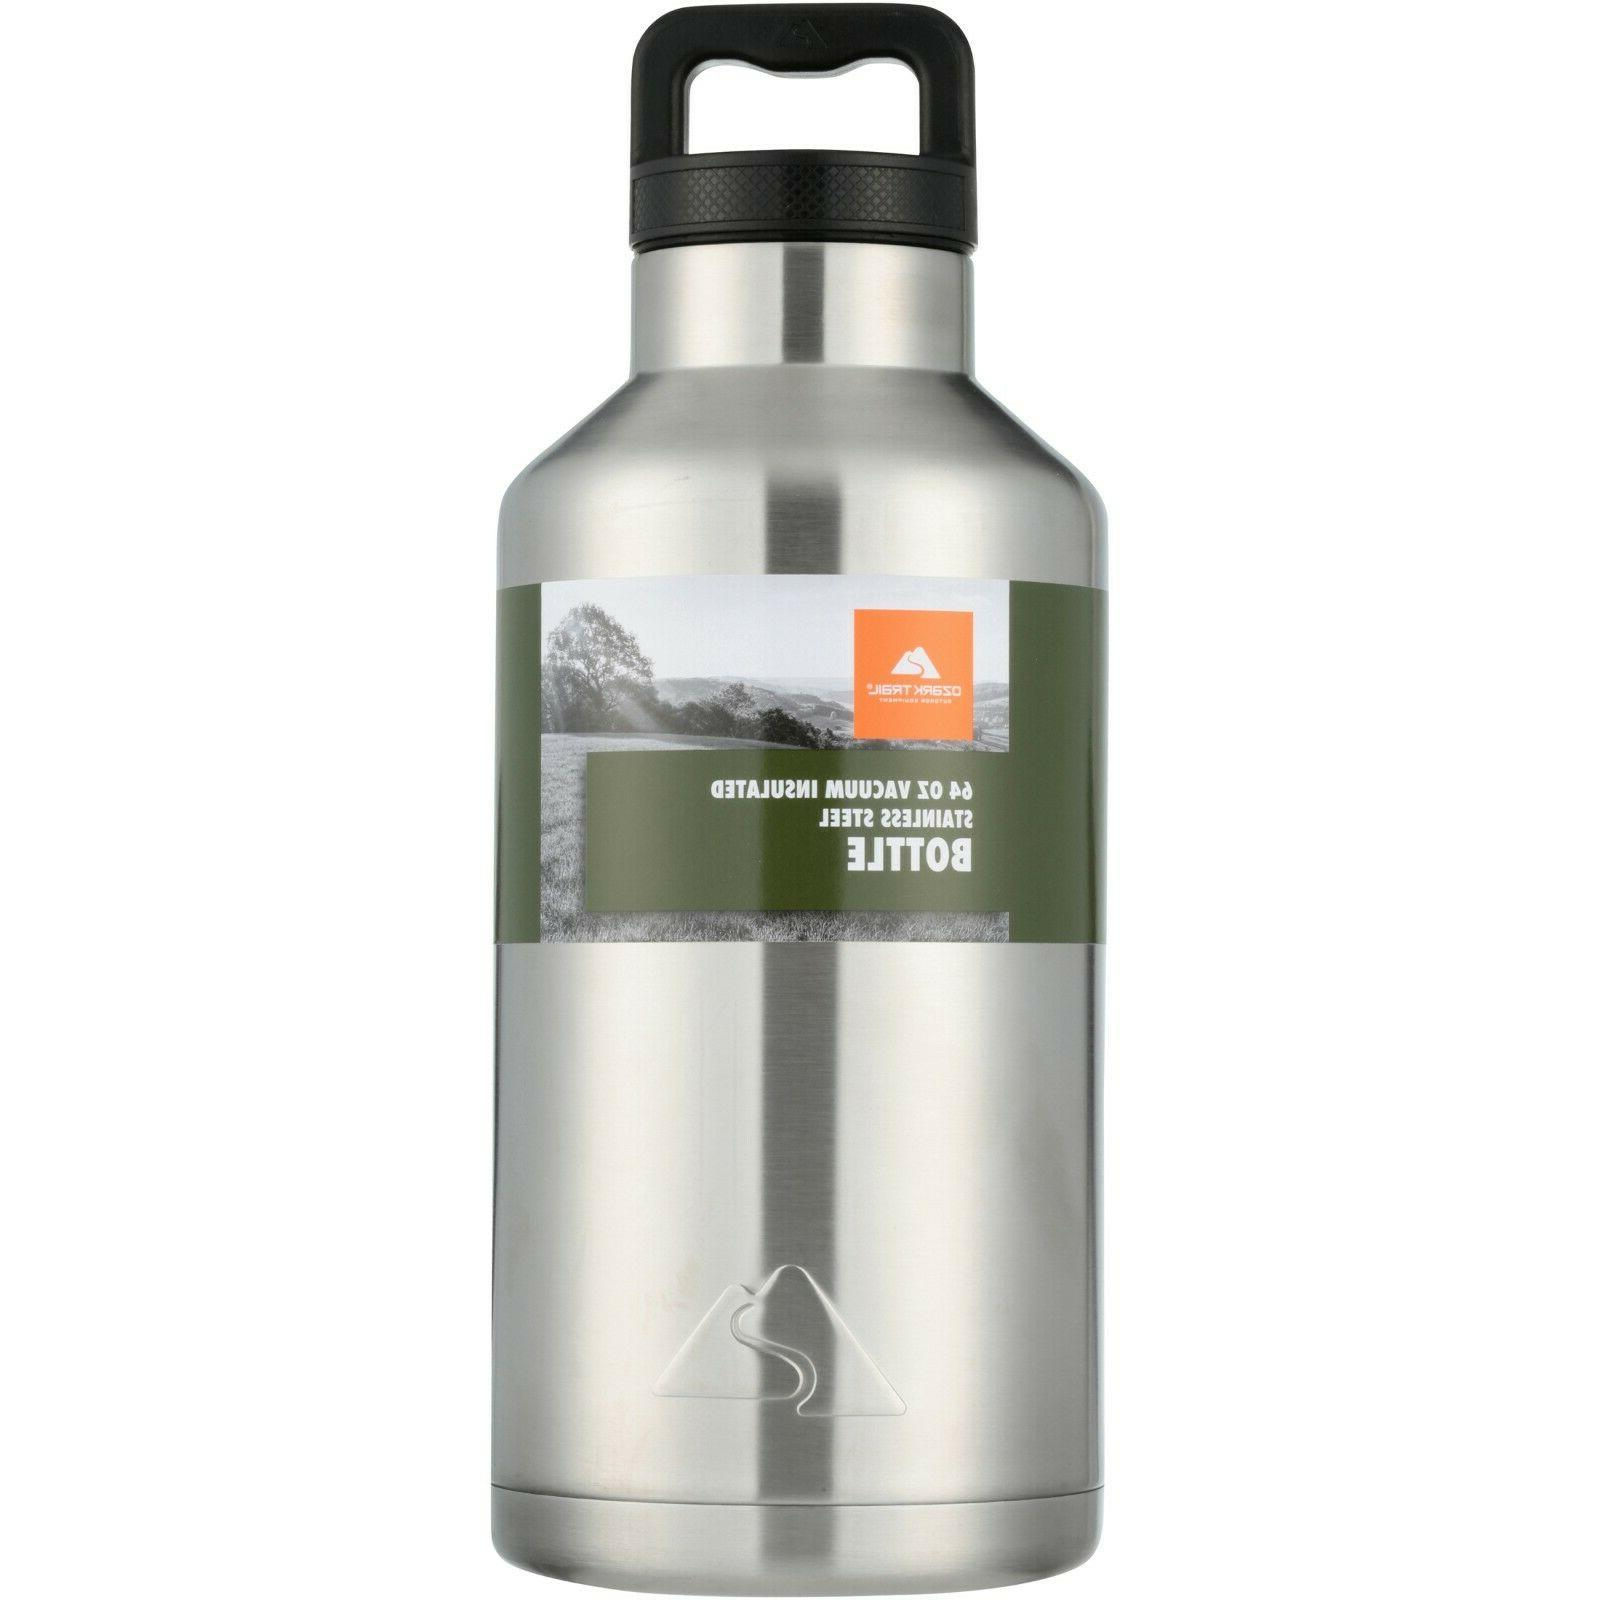 64oz double wall vacuum sealed stainless steel